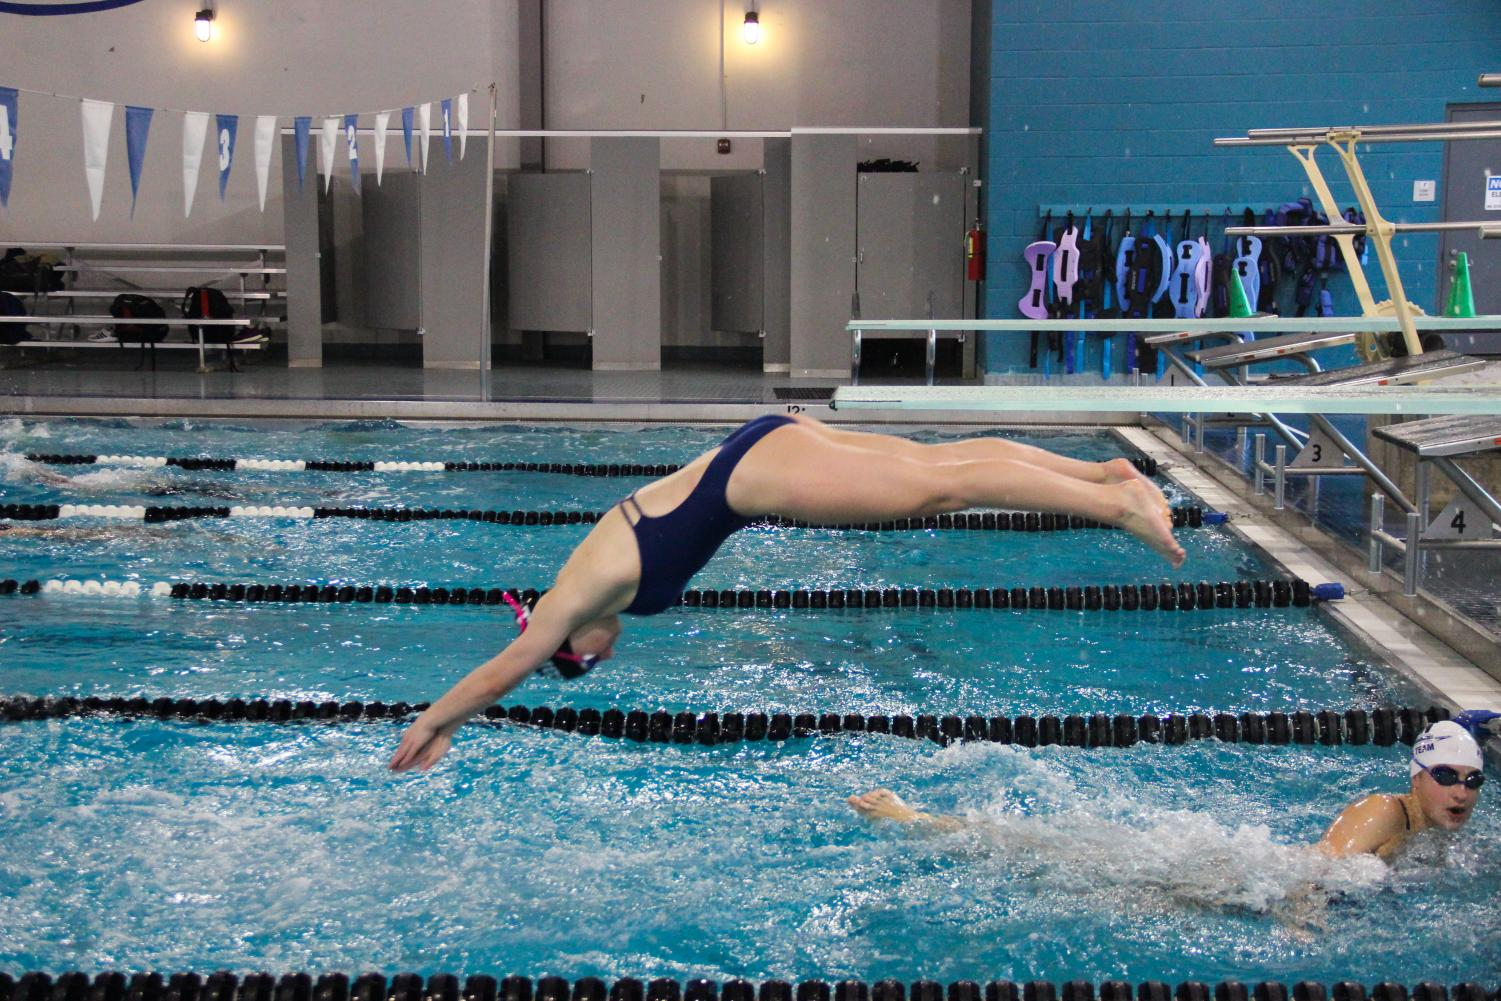 New Tech High @ Coppell senior AnaMarija Radicic dives at practice at the Coppell YMCA on Jan. 24. Coming from Croatia after living there for nine years, Radicic adjusted to her new environment and is now a captain of the varsity swim team.